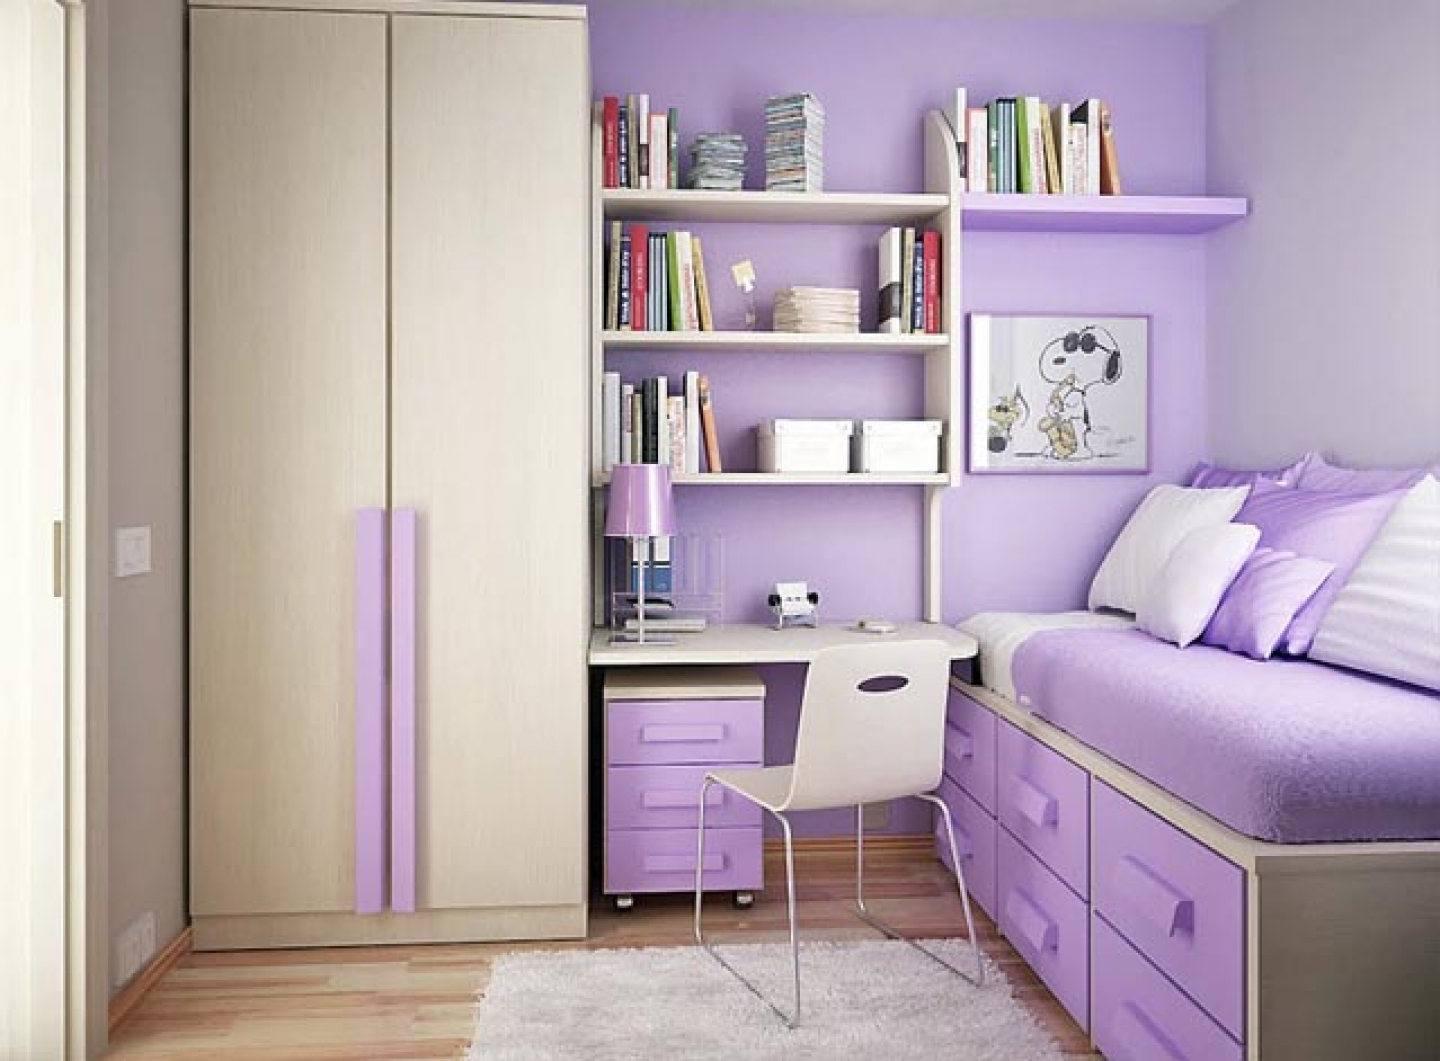 Girl bedroom ideas for small bedrooms. Girl bedroom ideas for small bedrooms   large and beautiful photos